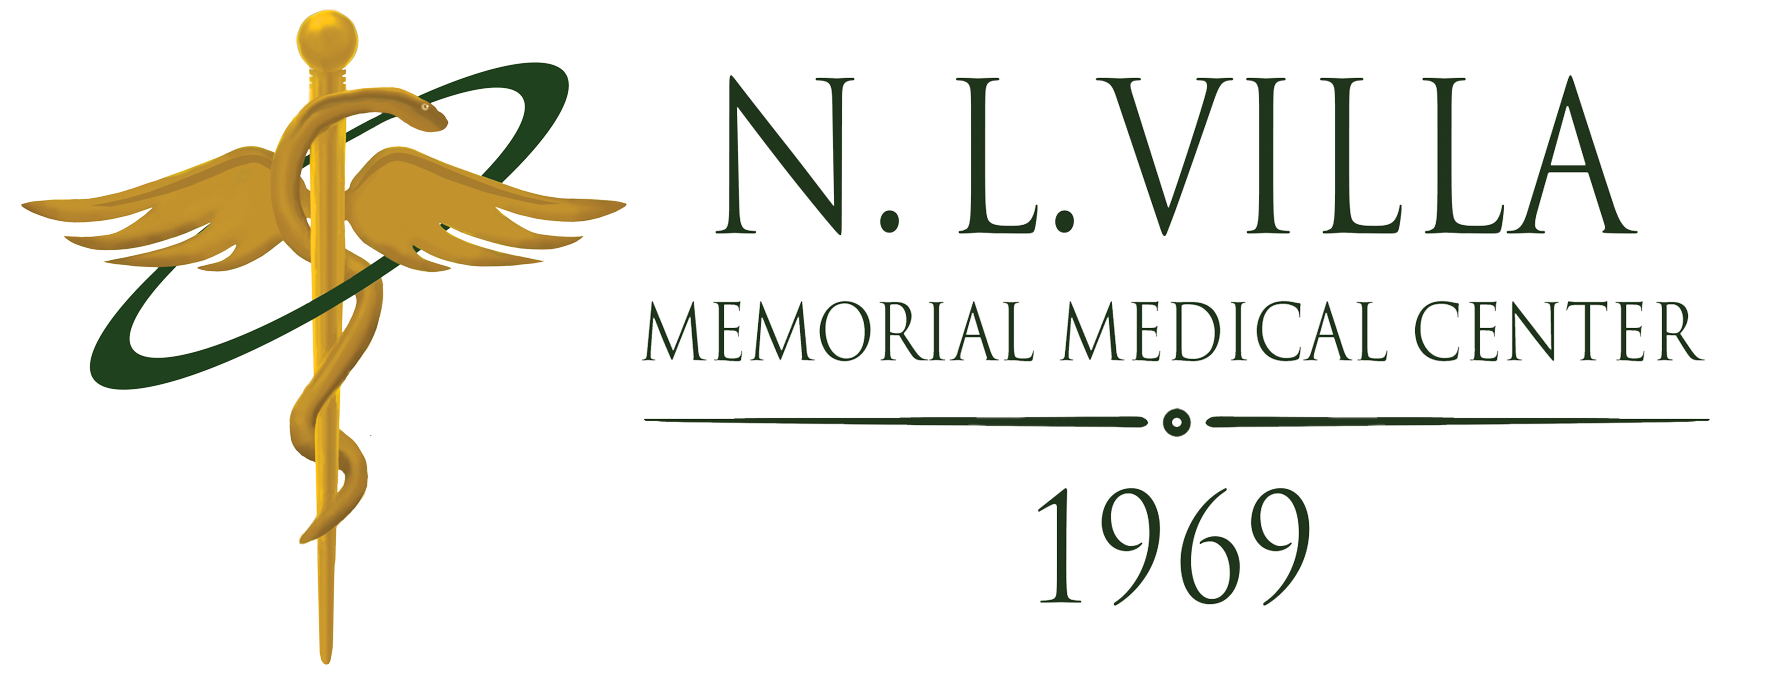 NL Villa Memorial Medical Center Logo